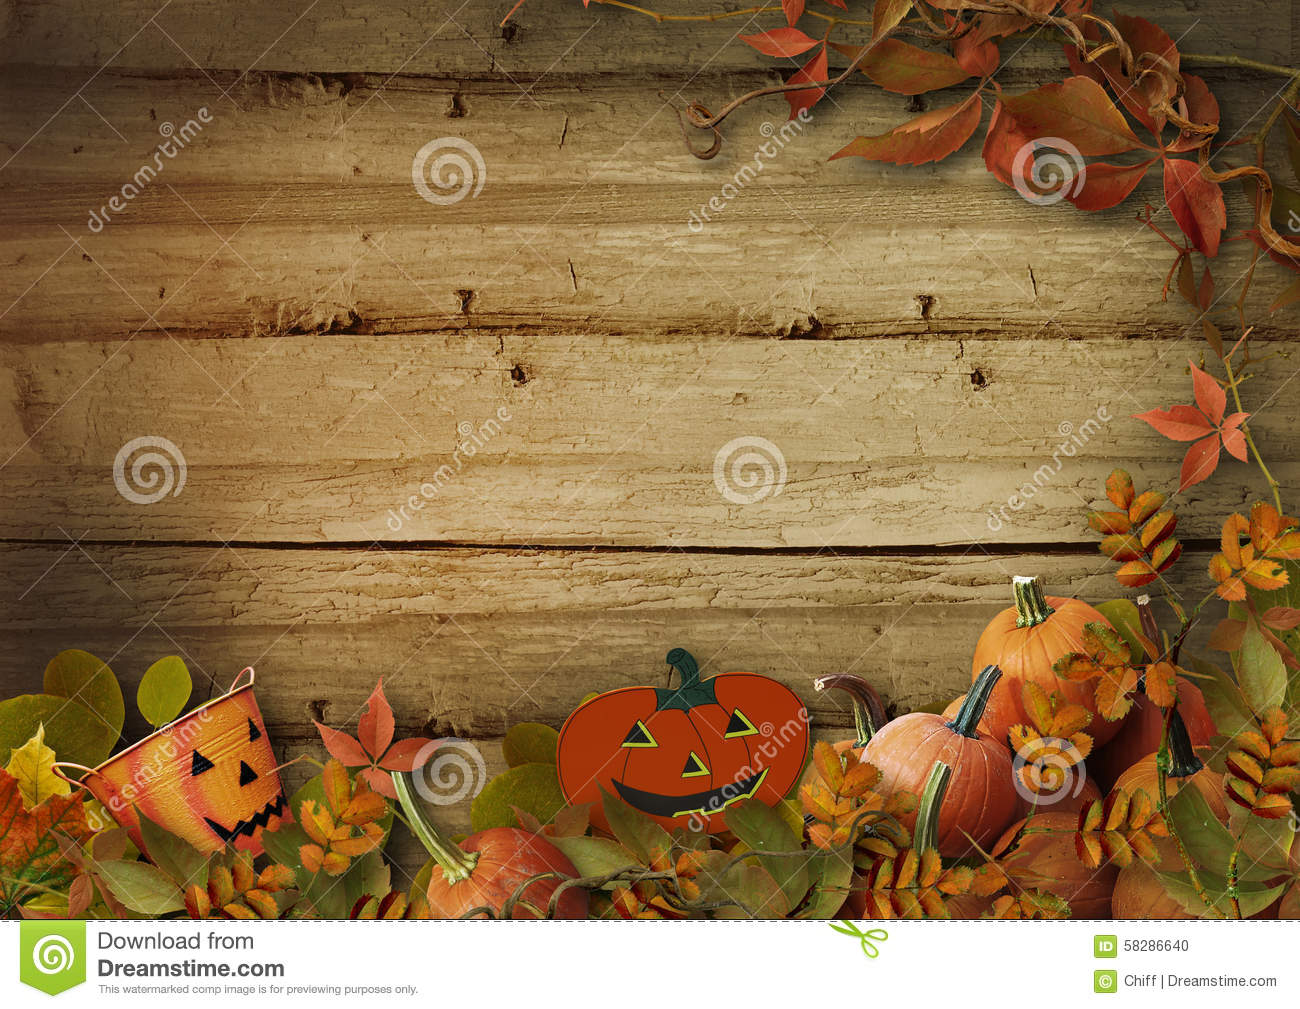 halloween pumpkins and autumn leaves on wooden background